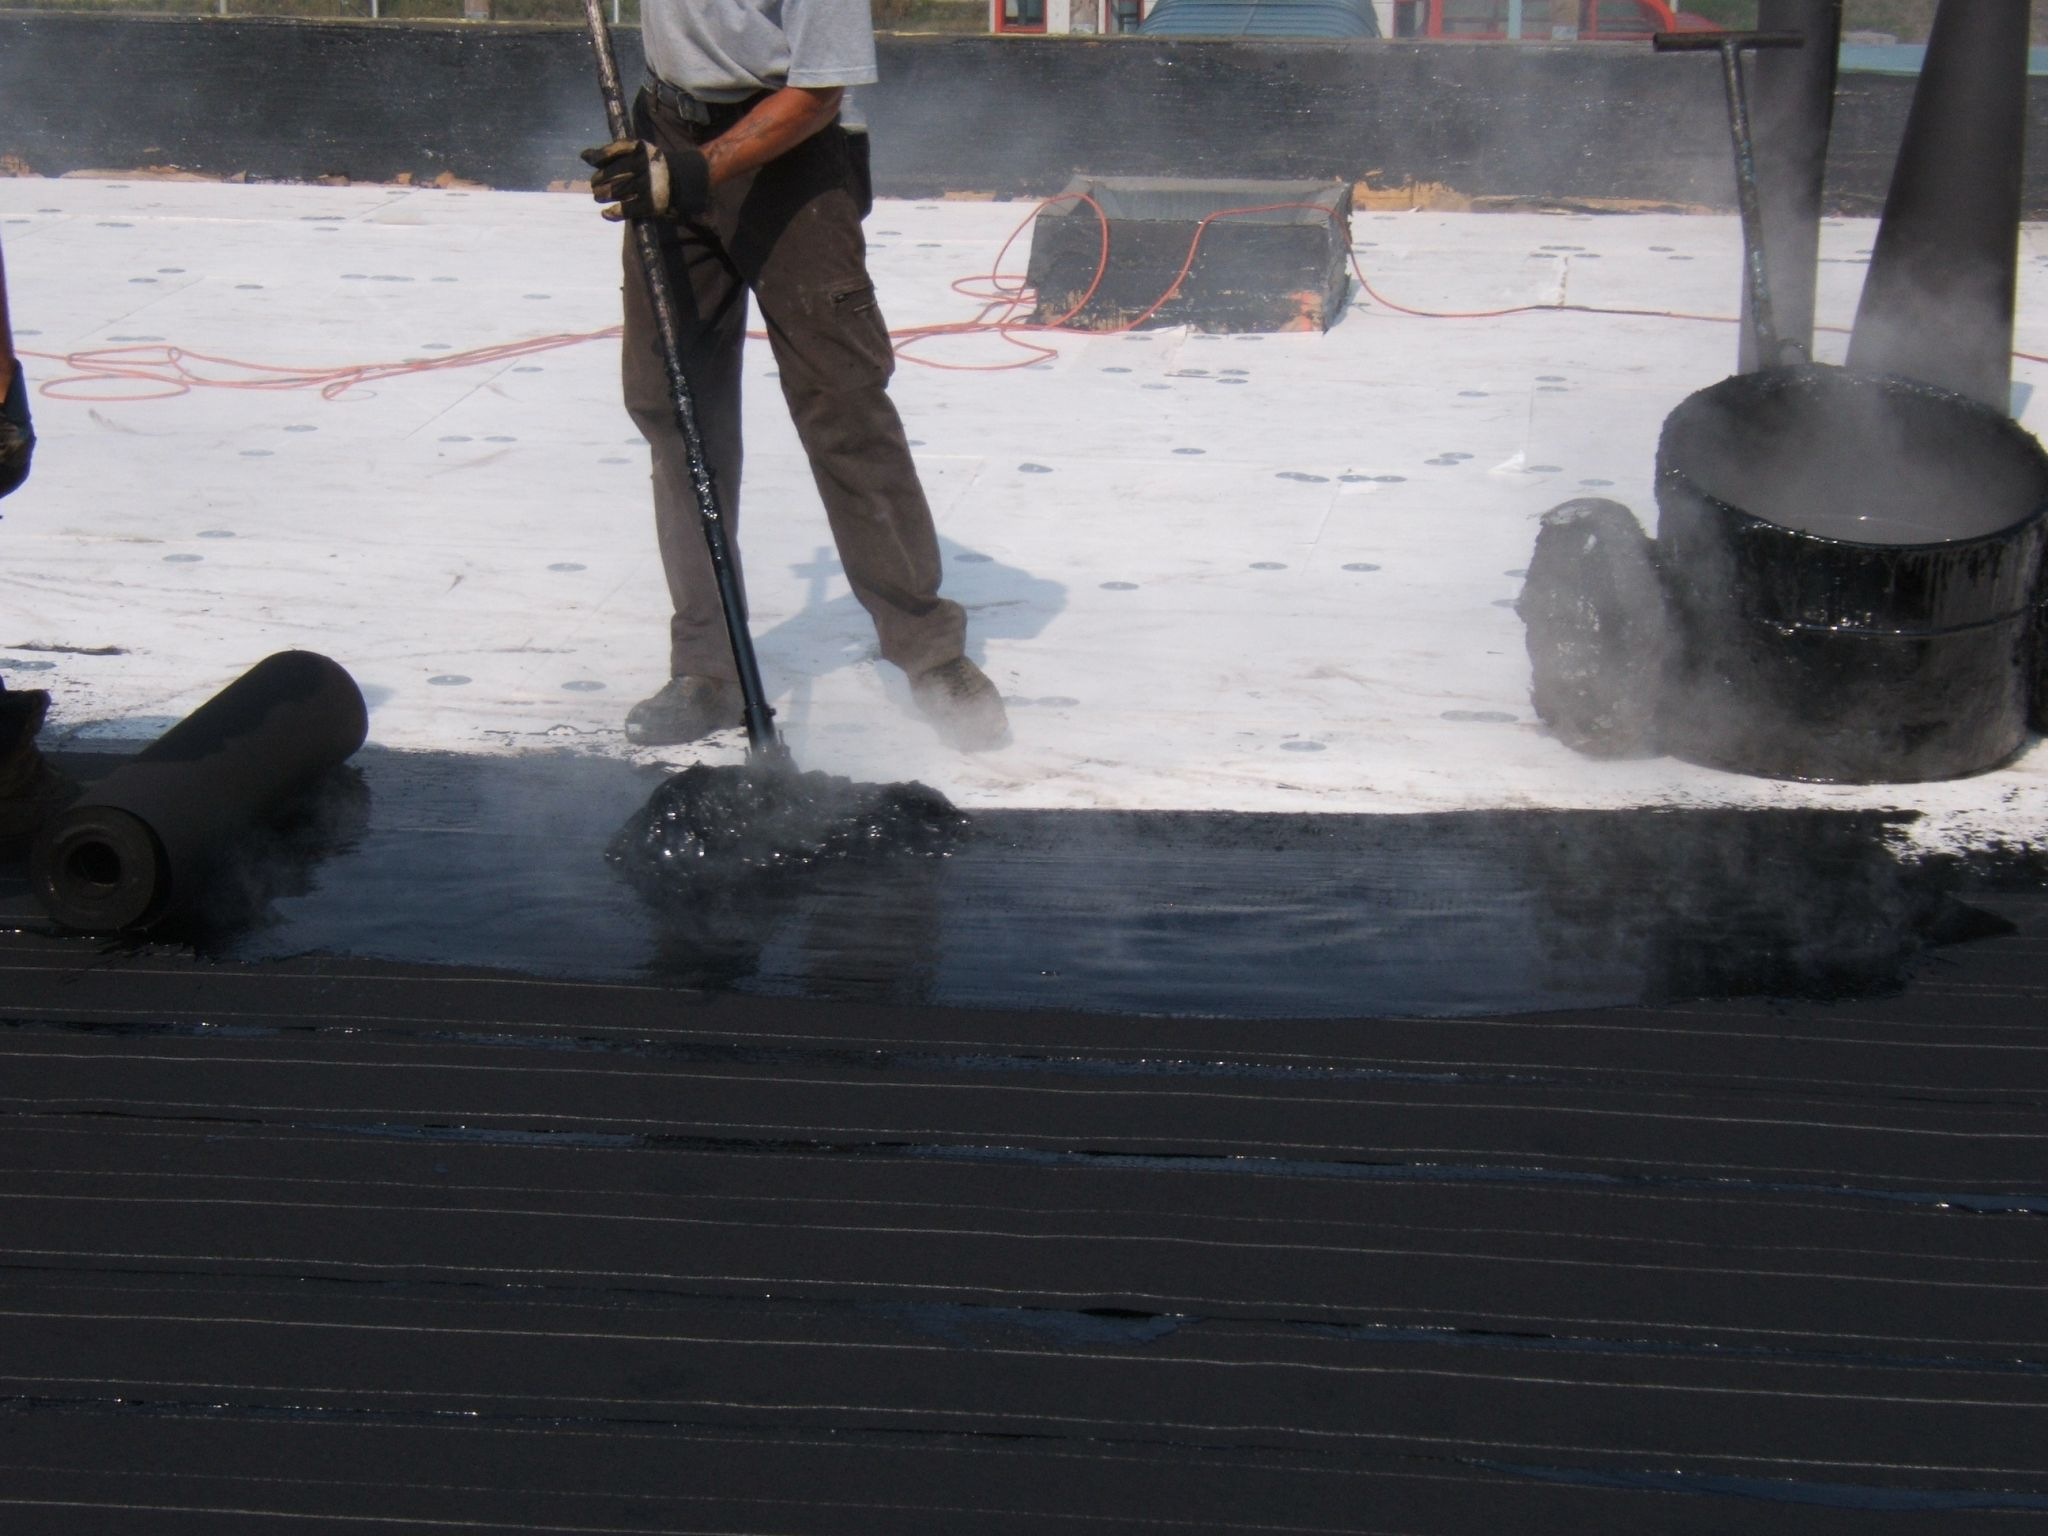 In addition to standard grades of roofing asphalt, polymer modified asphalts such as styrene-ethylene-butylene-styrene (SEBS) can also be used to further enhance the membrane performance.